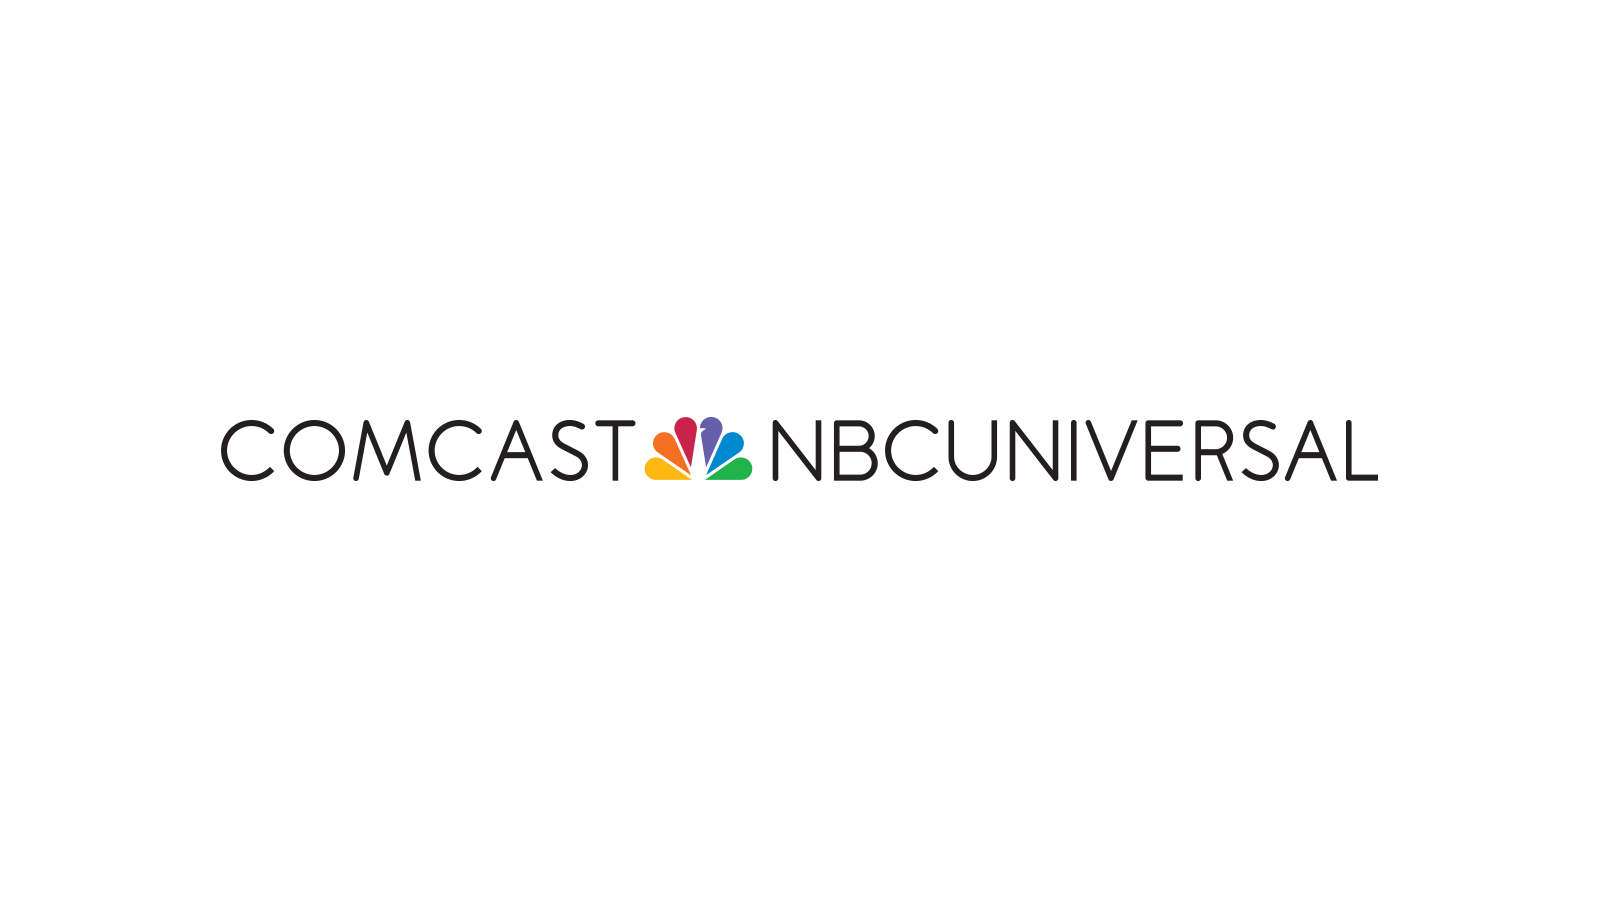 corporate_Comcast-NBCUniversal.png